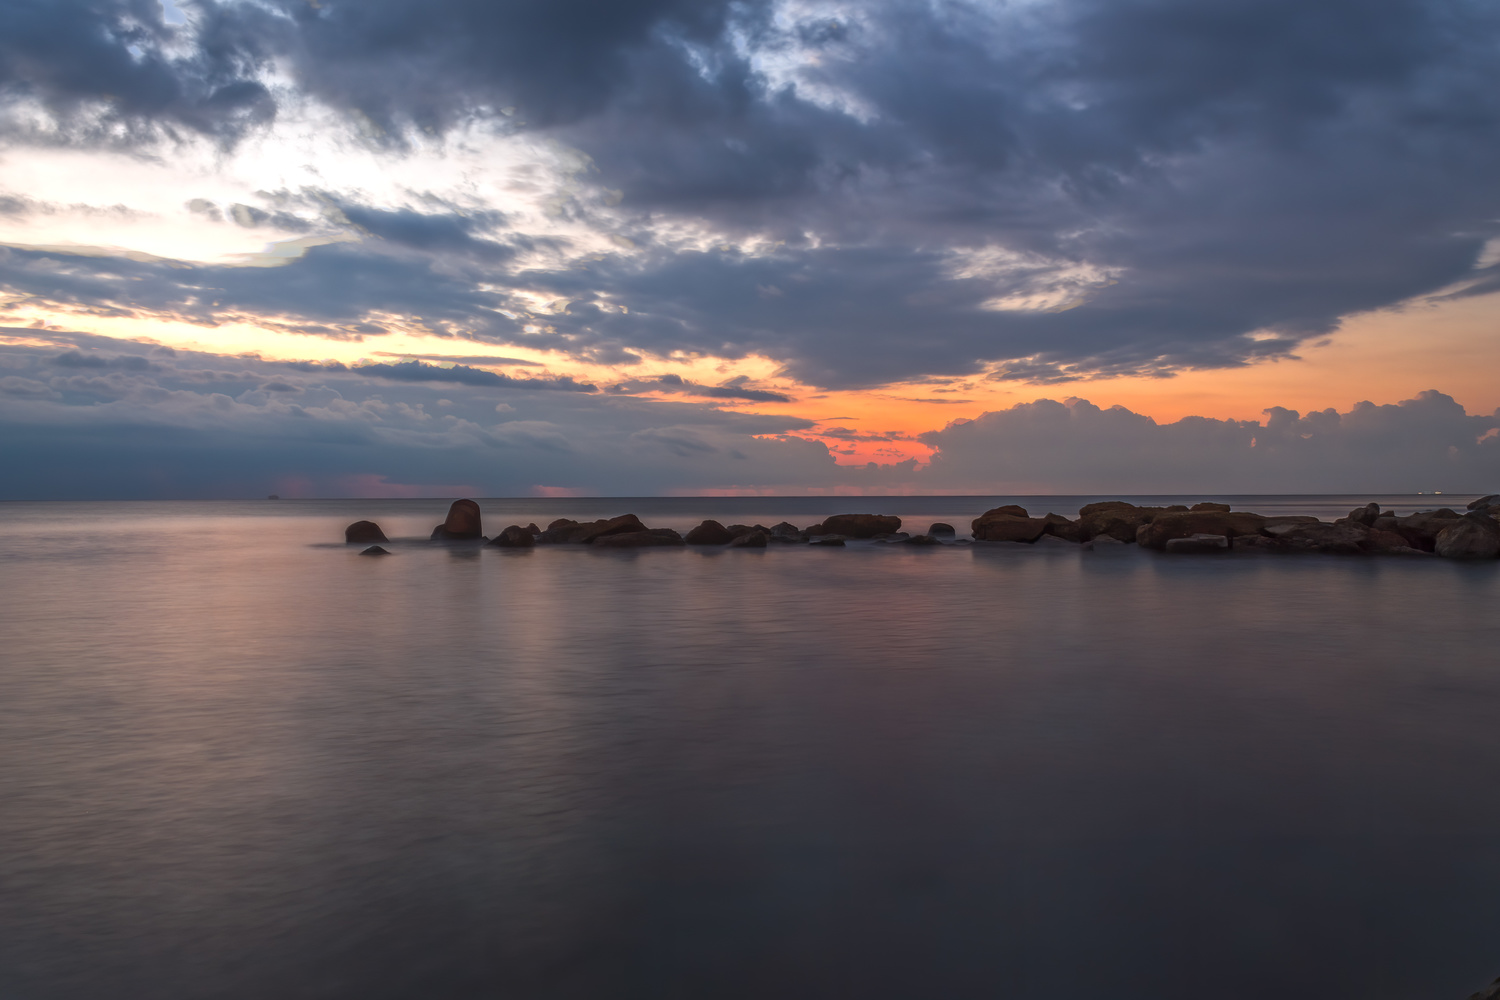 Morning sunrise by Luca Campioni